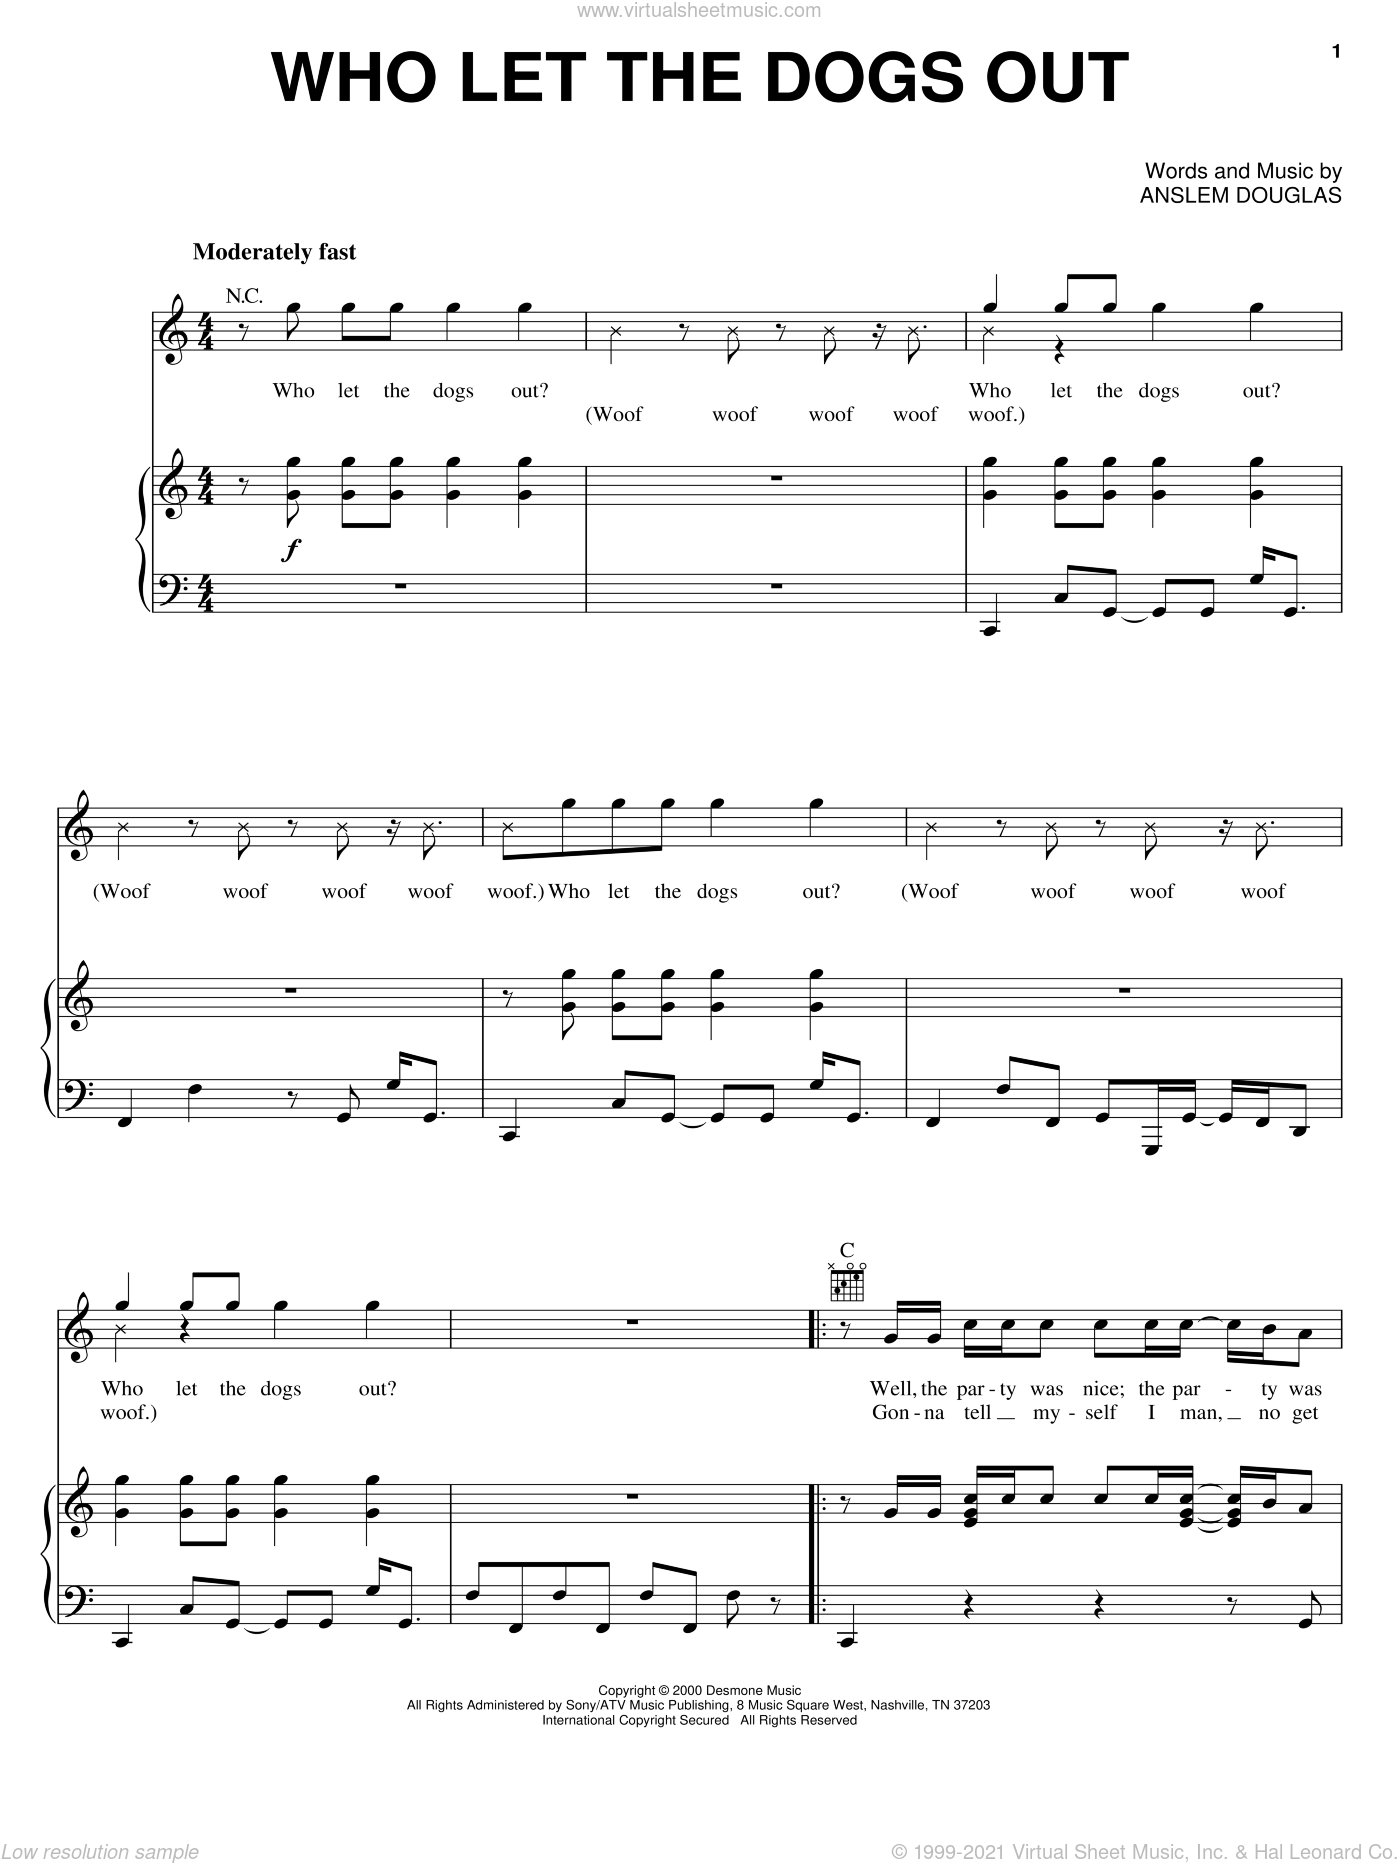 Who Let The Dogs Out sheet music for voice, piano or guitar by Baha Men and Anslem Douglas, intermediate skill level